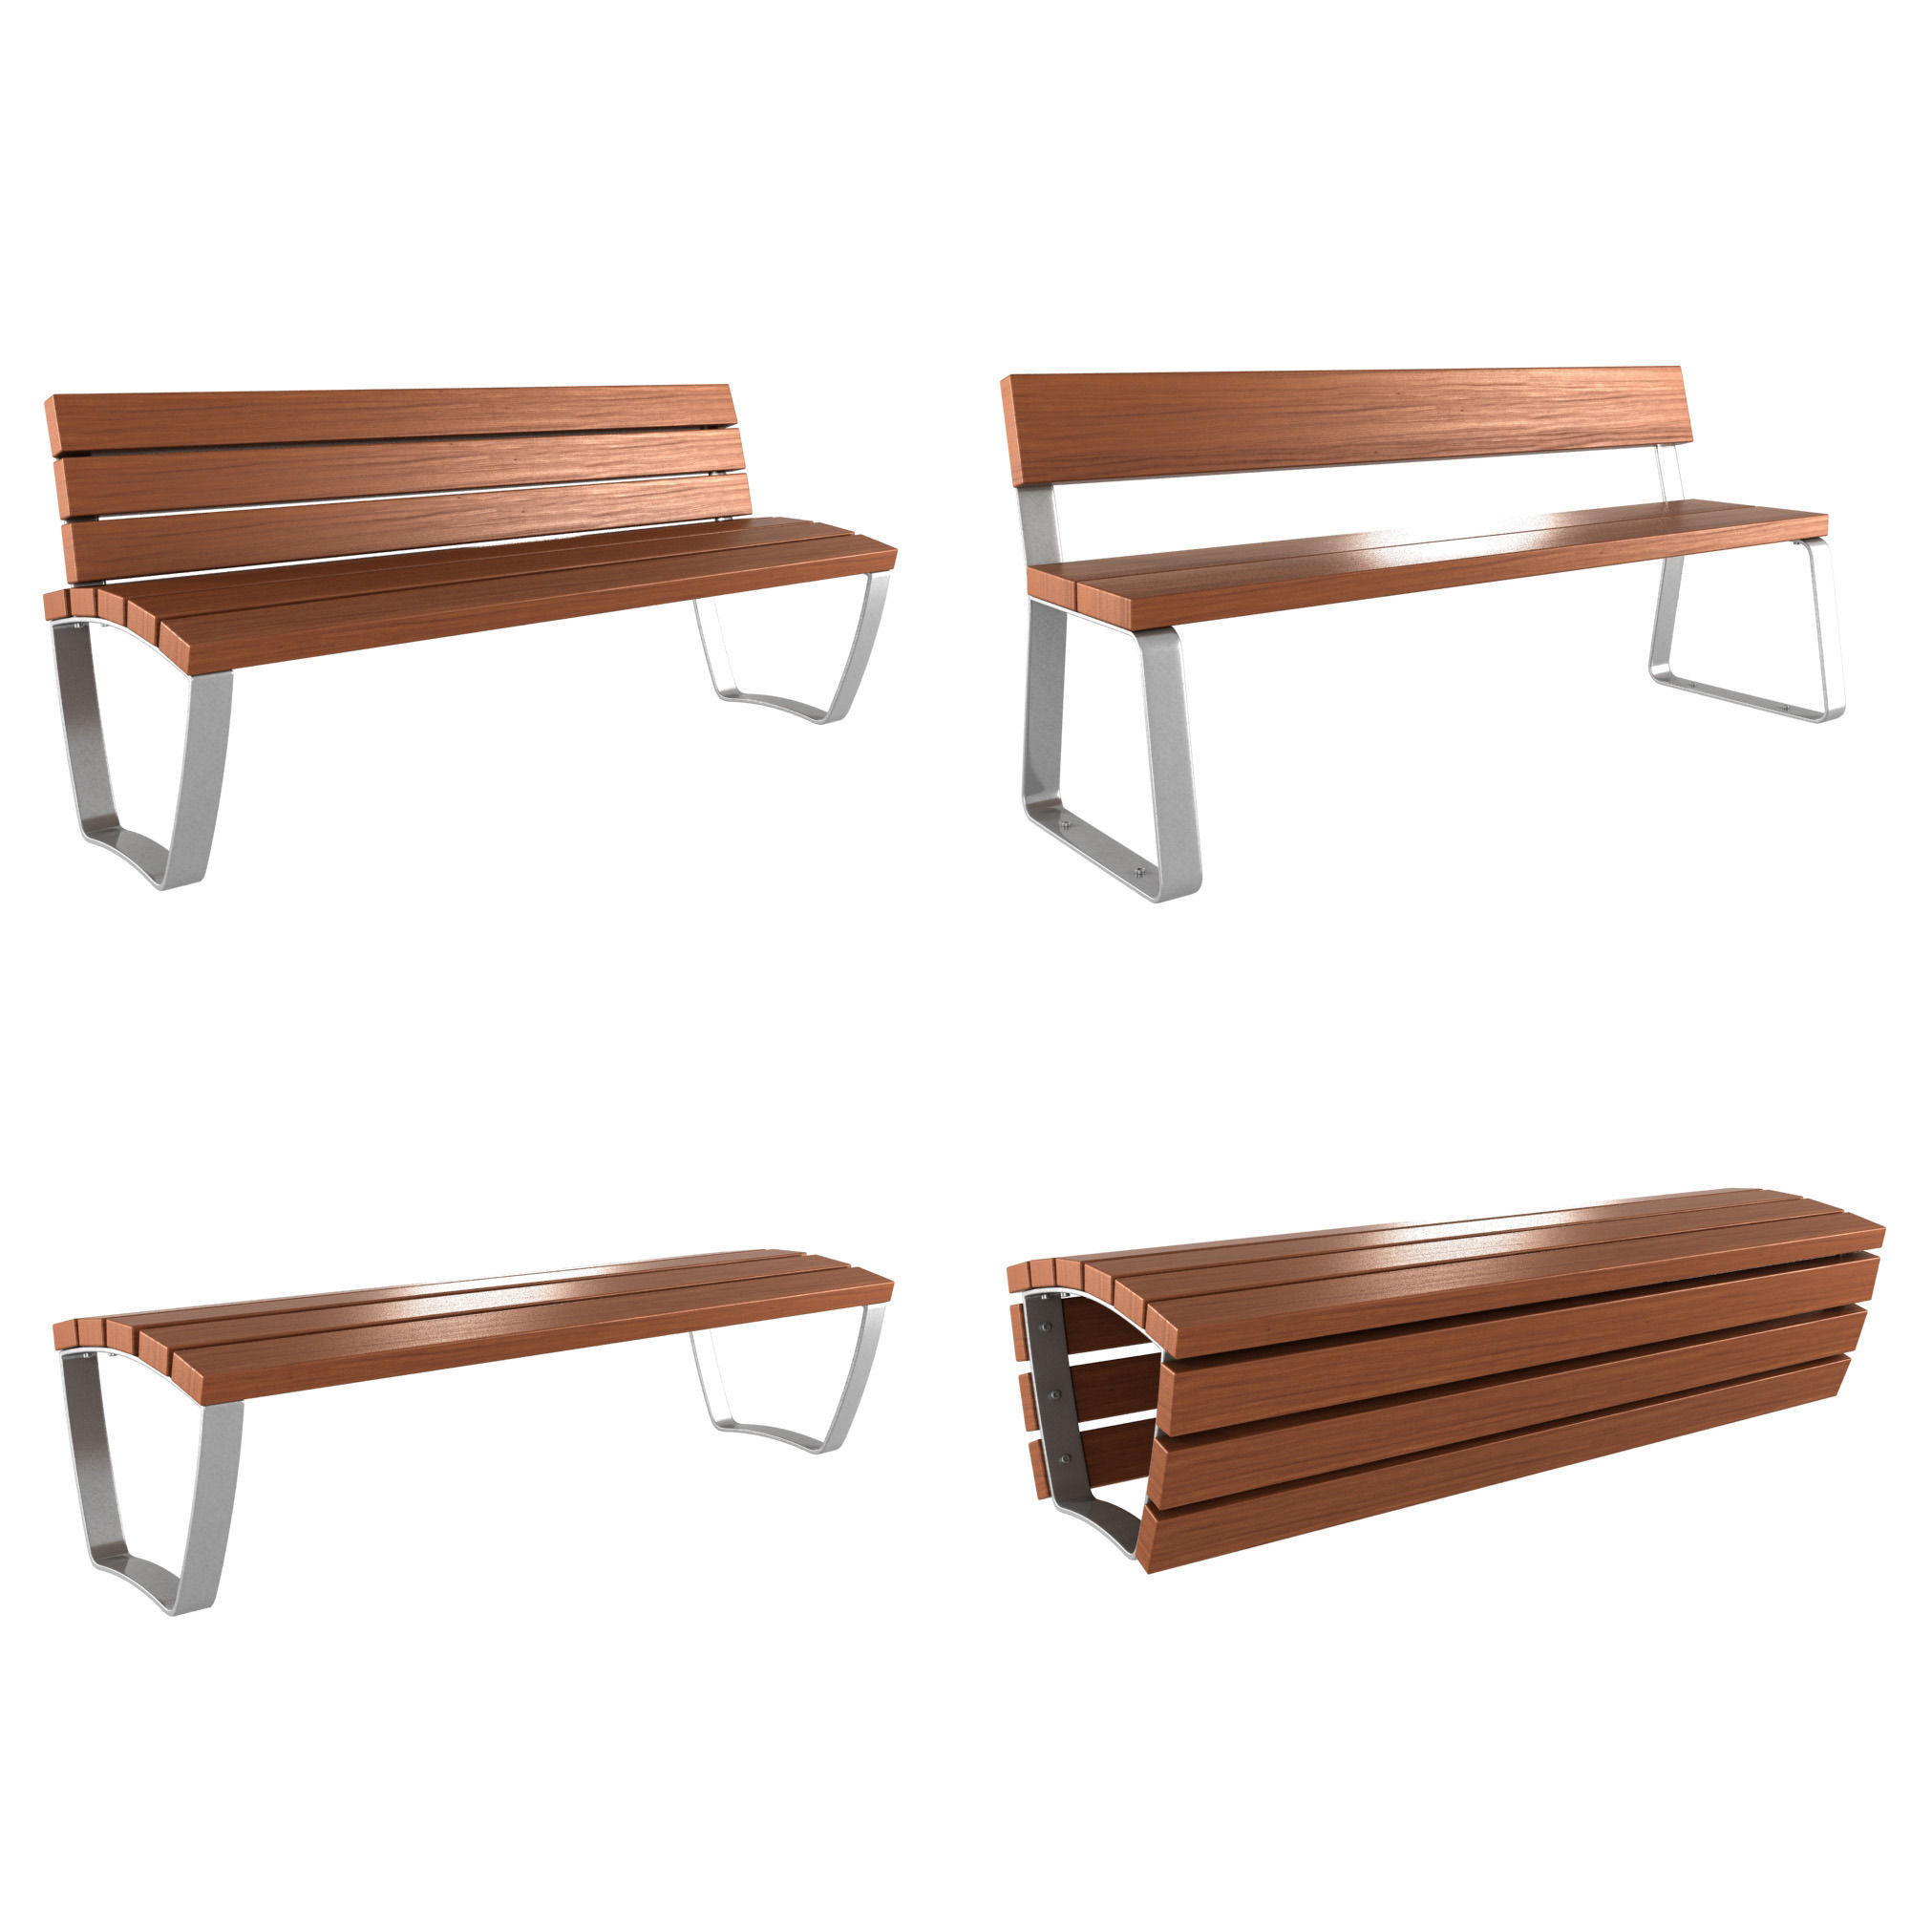 modern bench collection  d model max obj ds fbx mtl  . modern bench collection  d  cgtrader